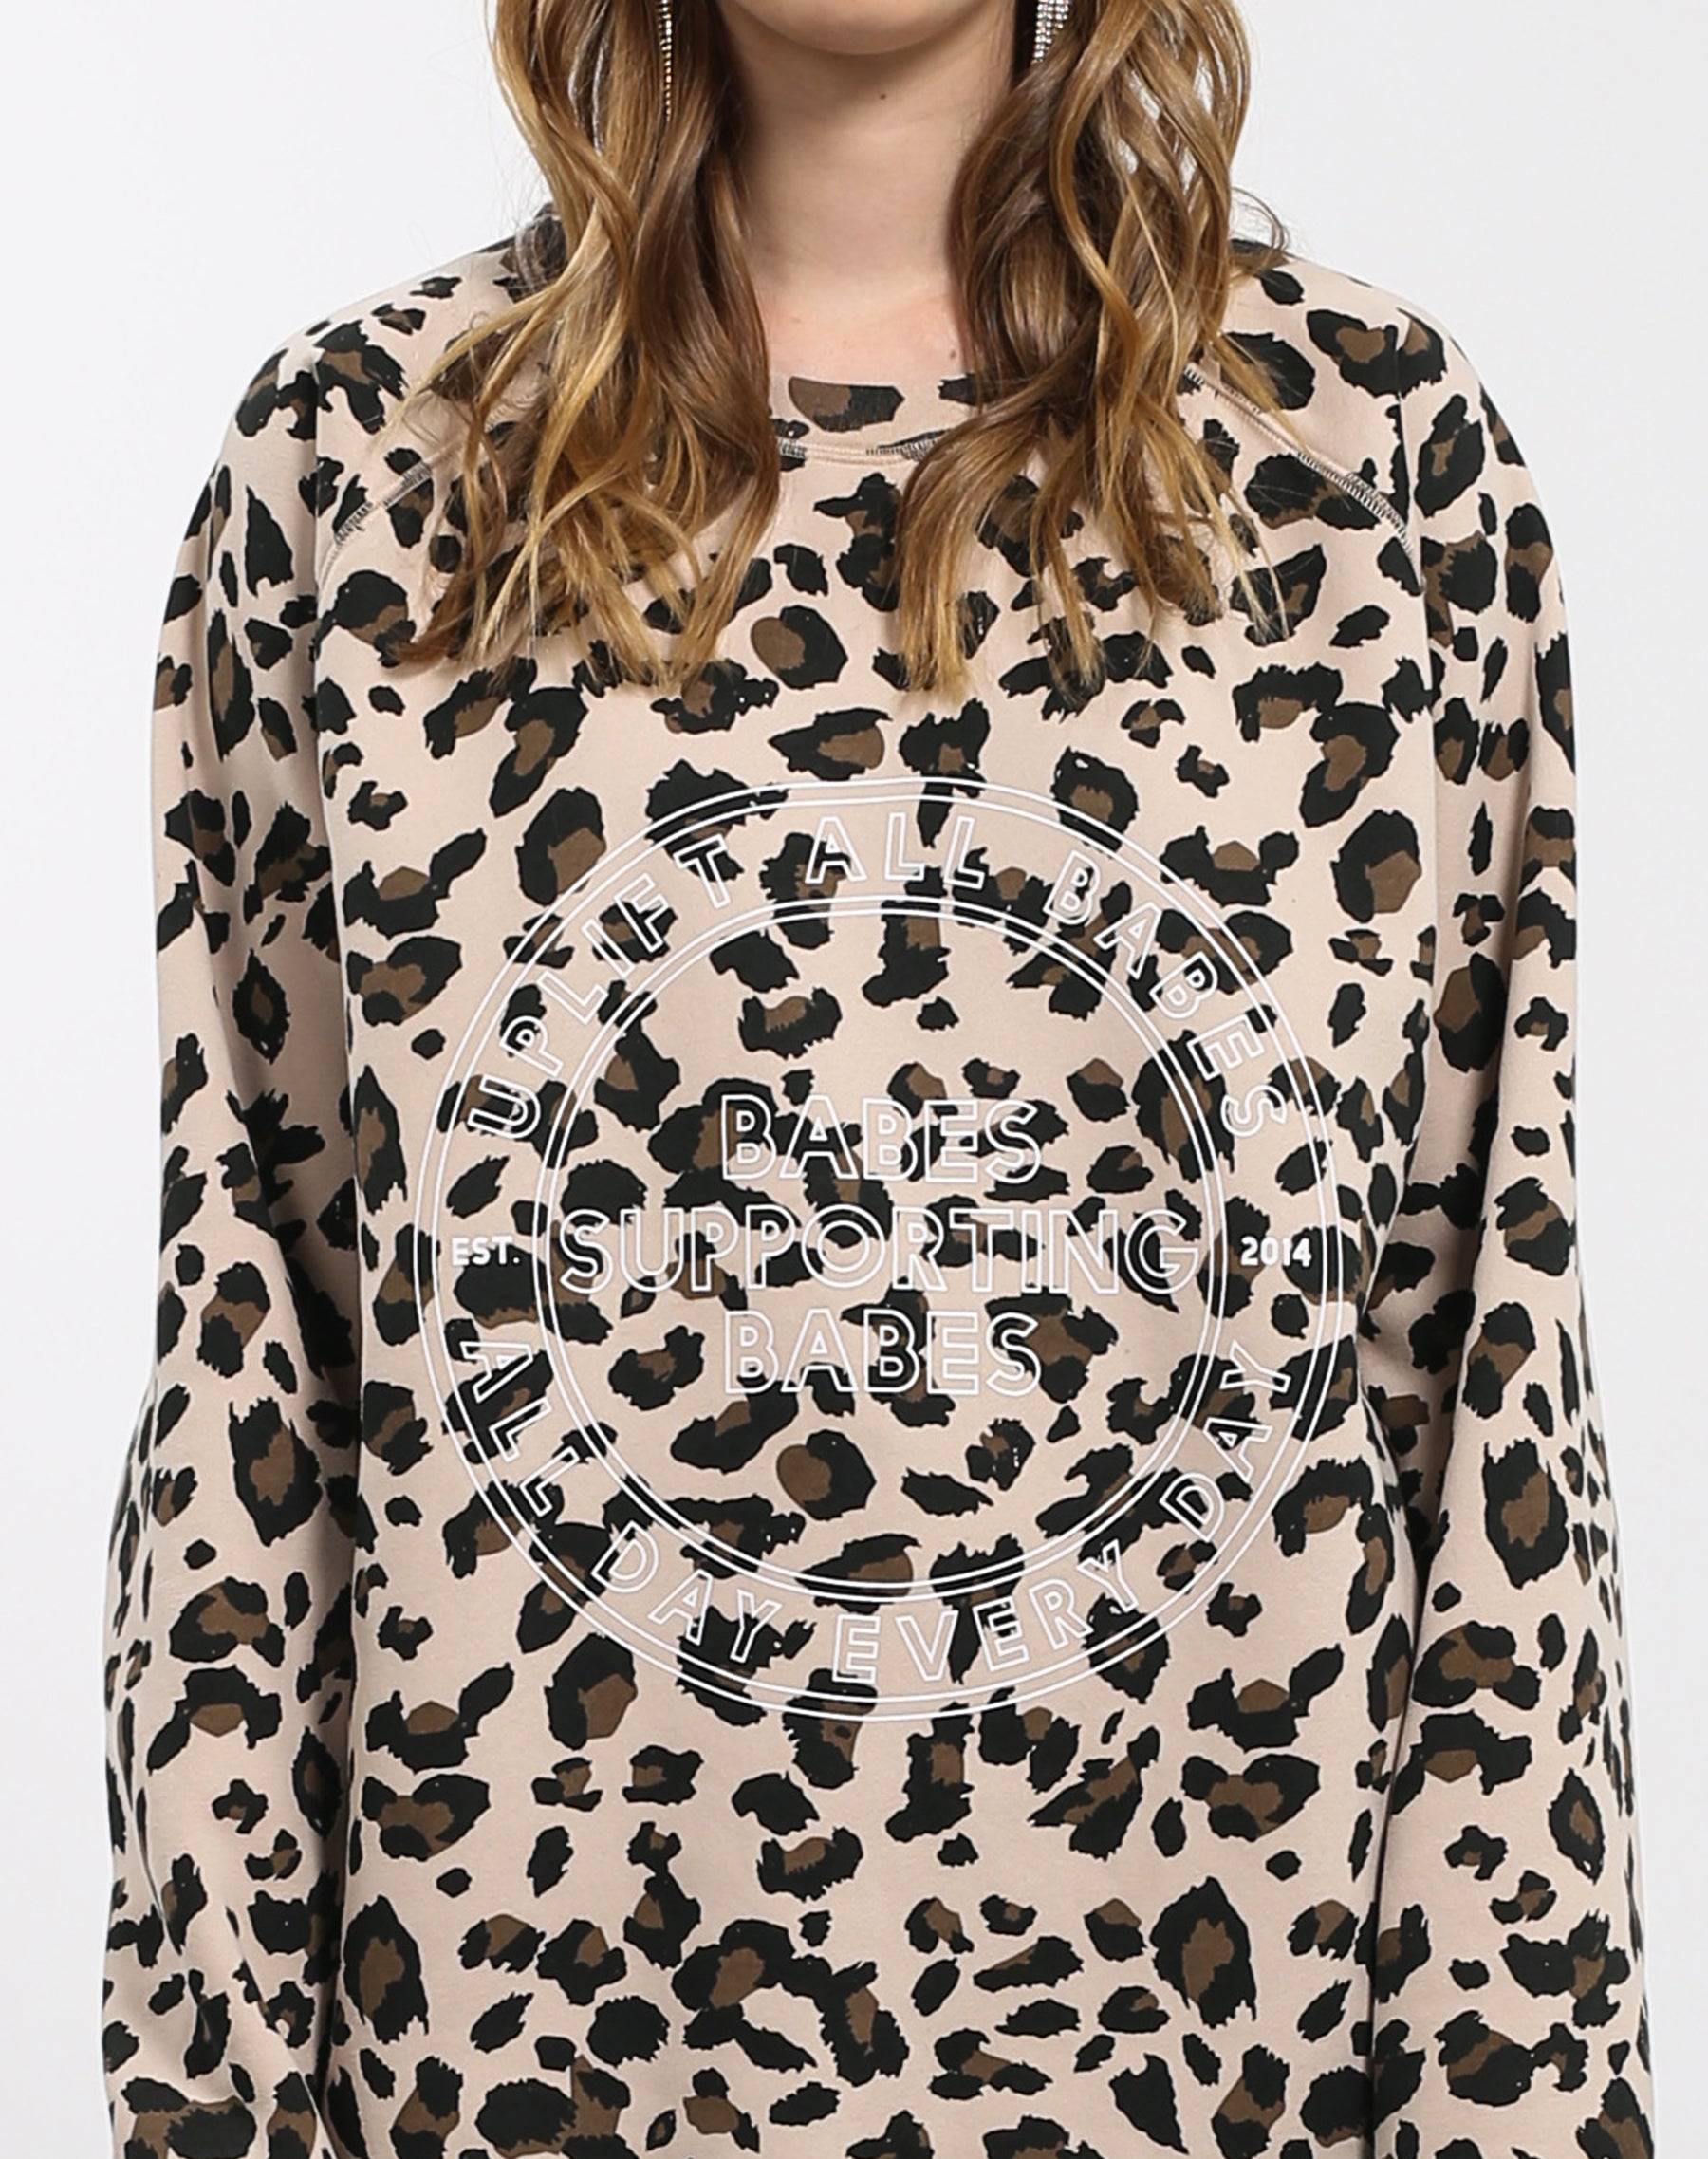 Close up photo of the Uplift All Babes big sister crew neck sweatshirt in leopard by Brunette the Label.